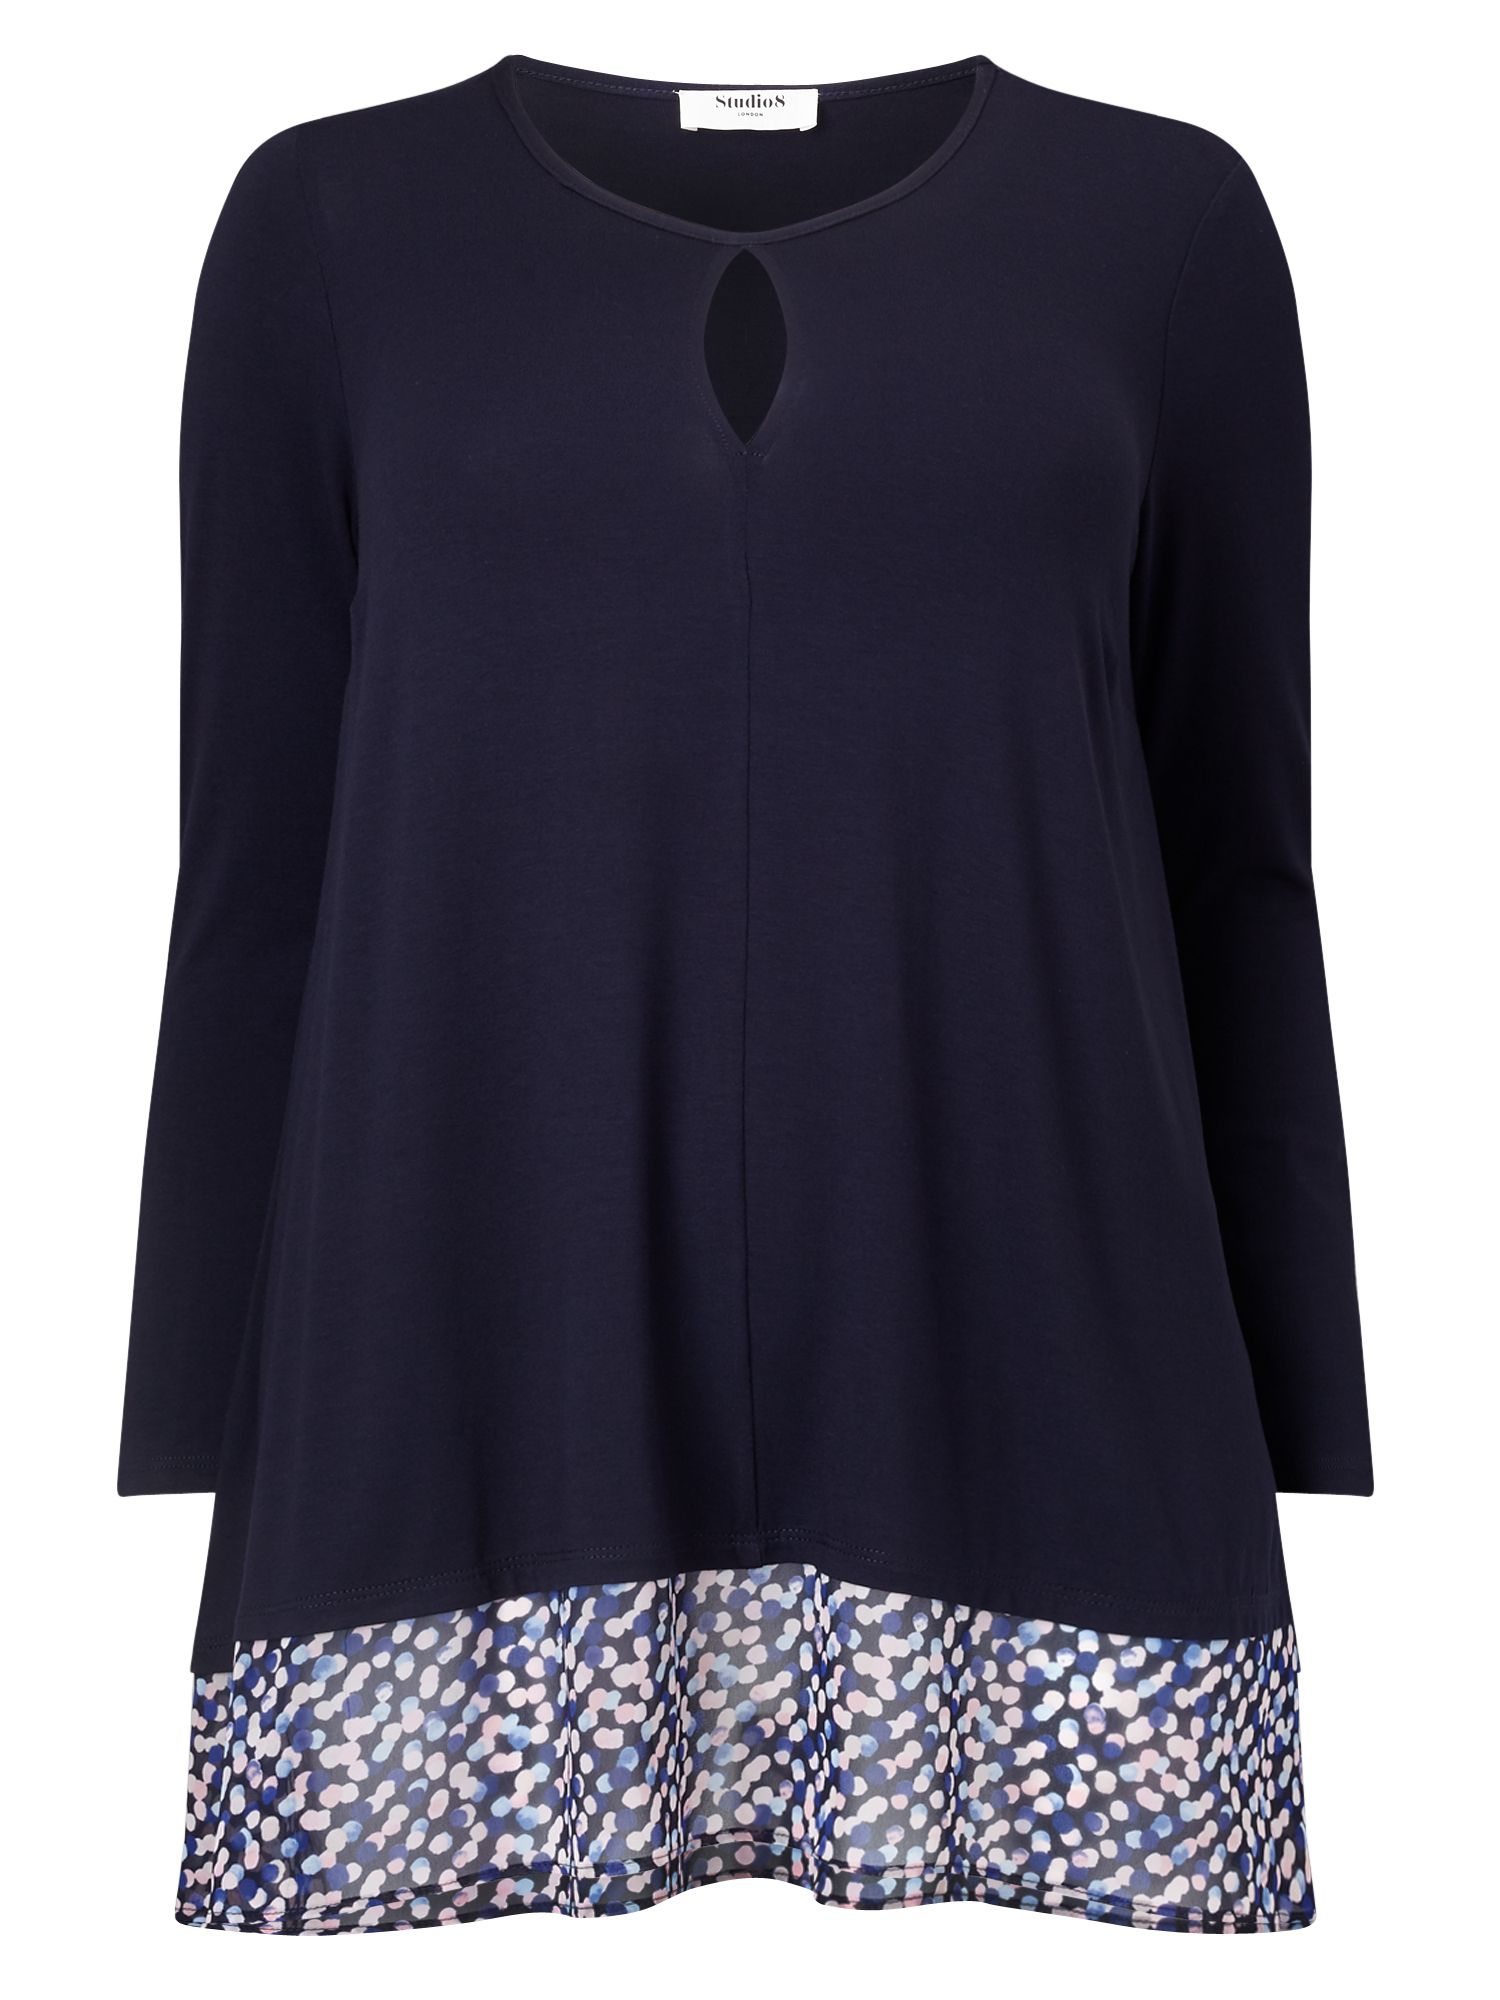 Studio 8 Hattie Top, Blue